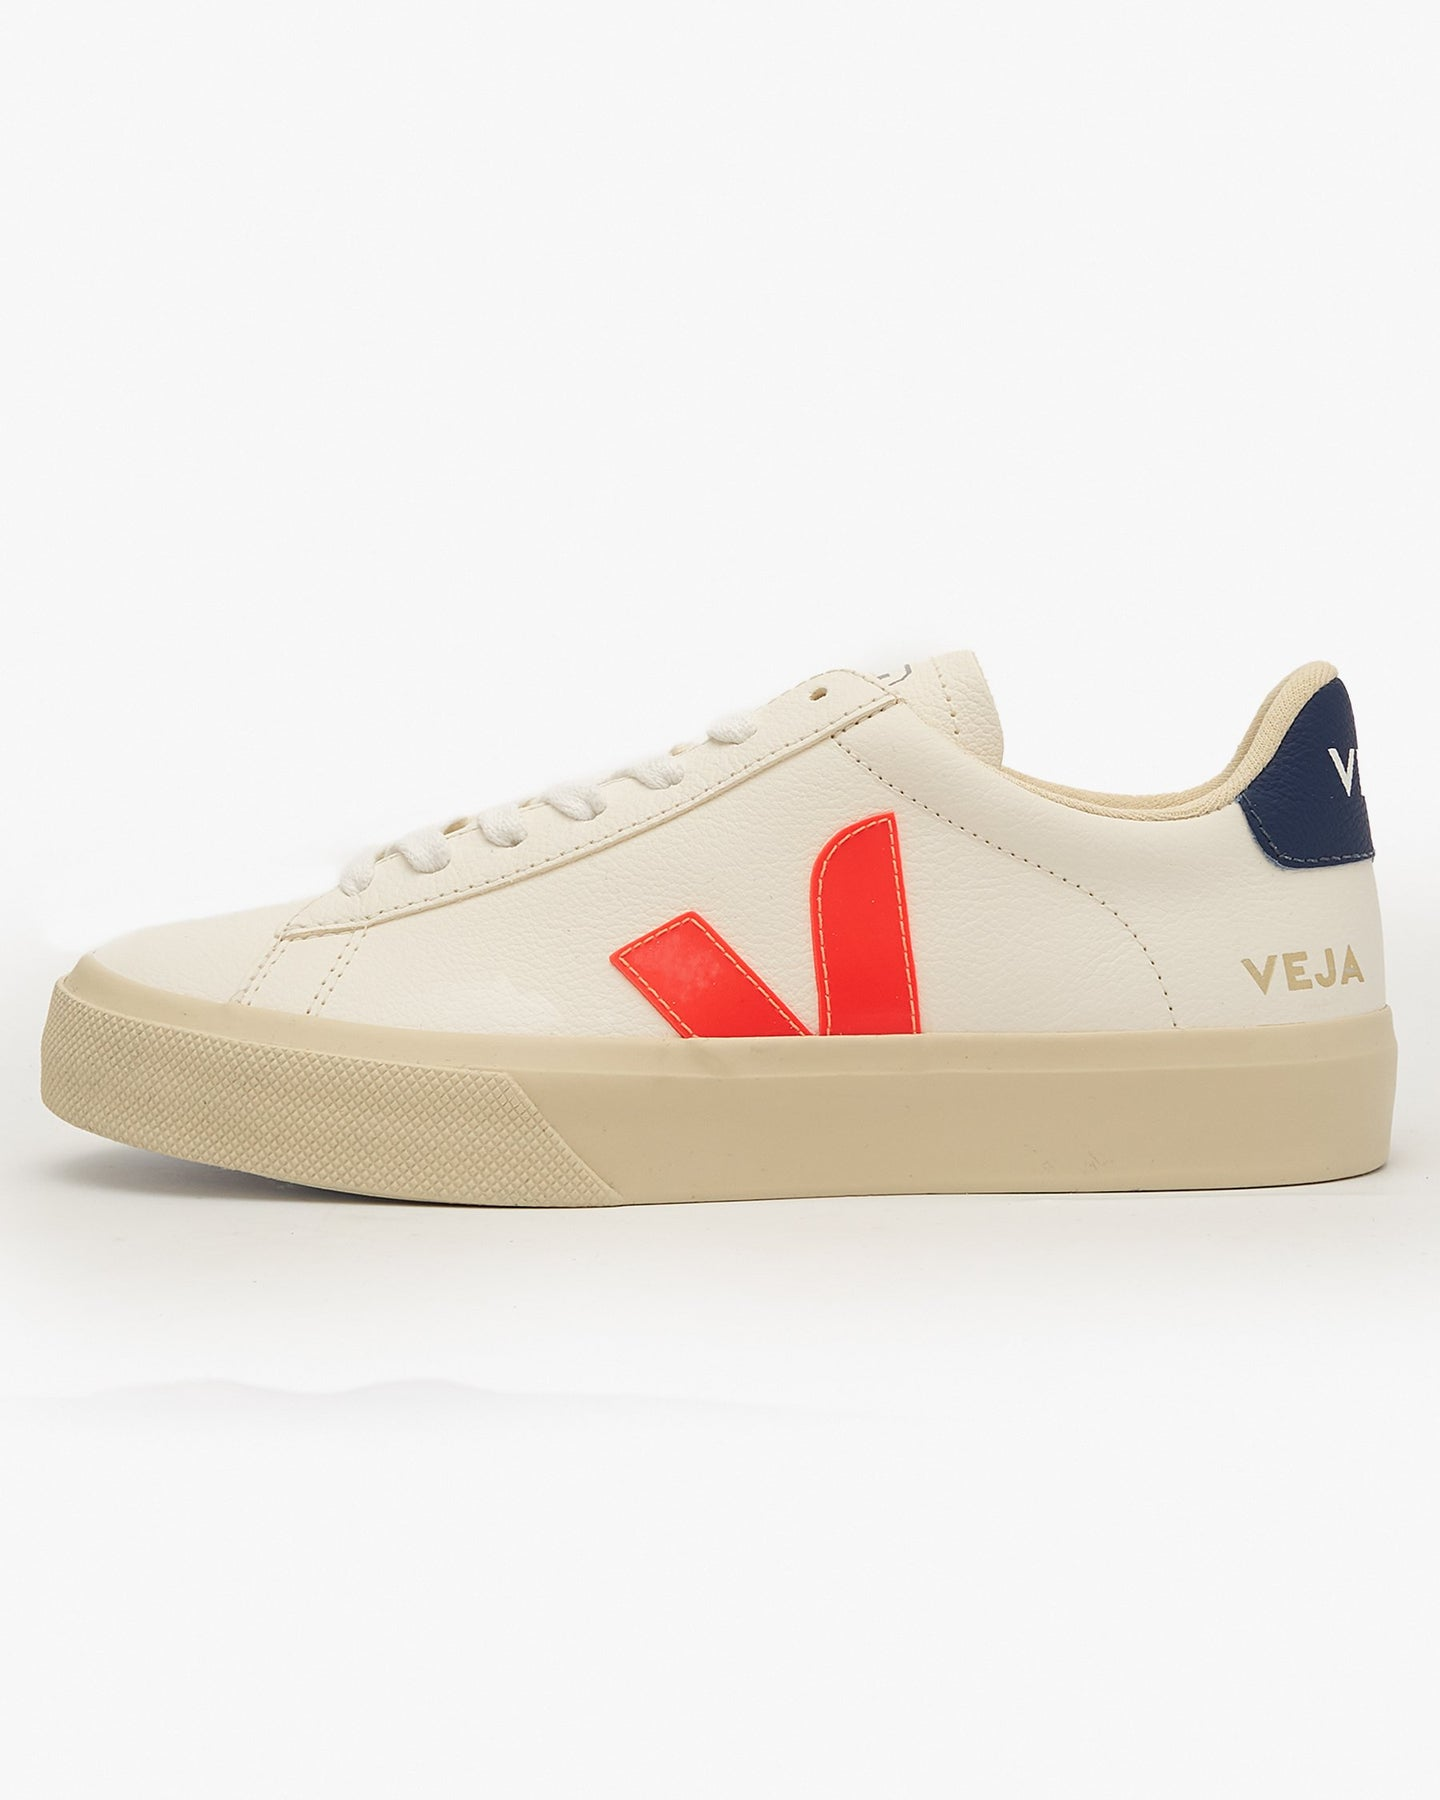 Veja Womens Campo Chromefree Leather Sneakers - Extra White / Orange UK 3 CP052195A3 3611820006577 Veja Trainers